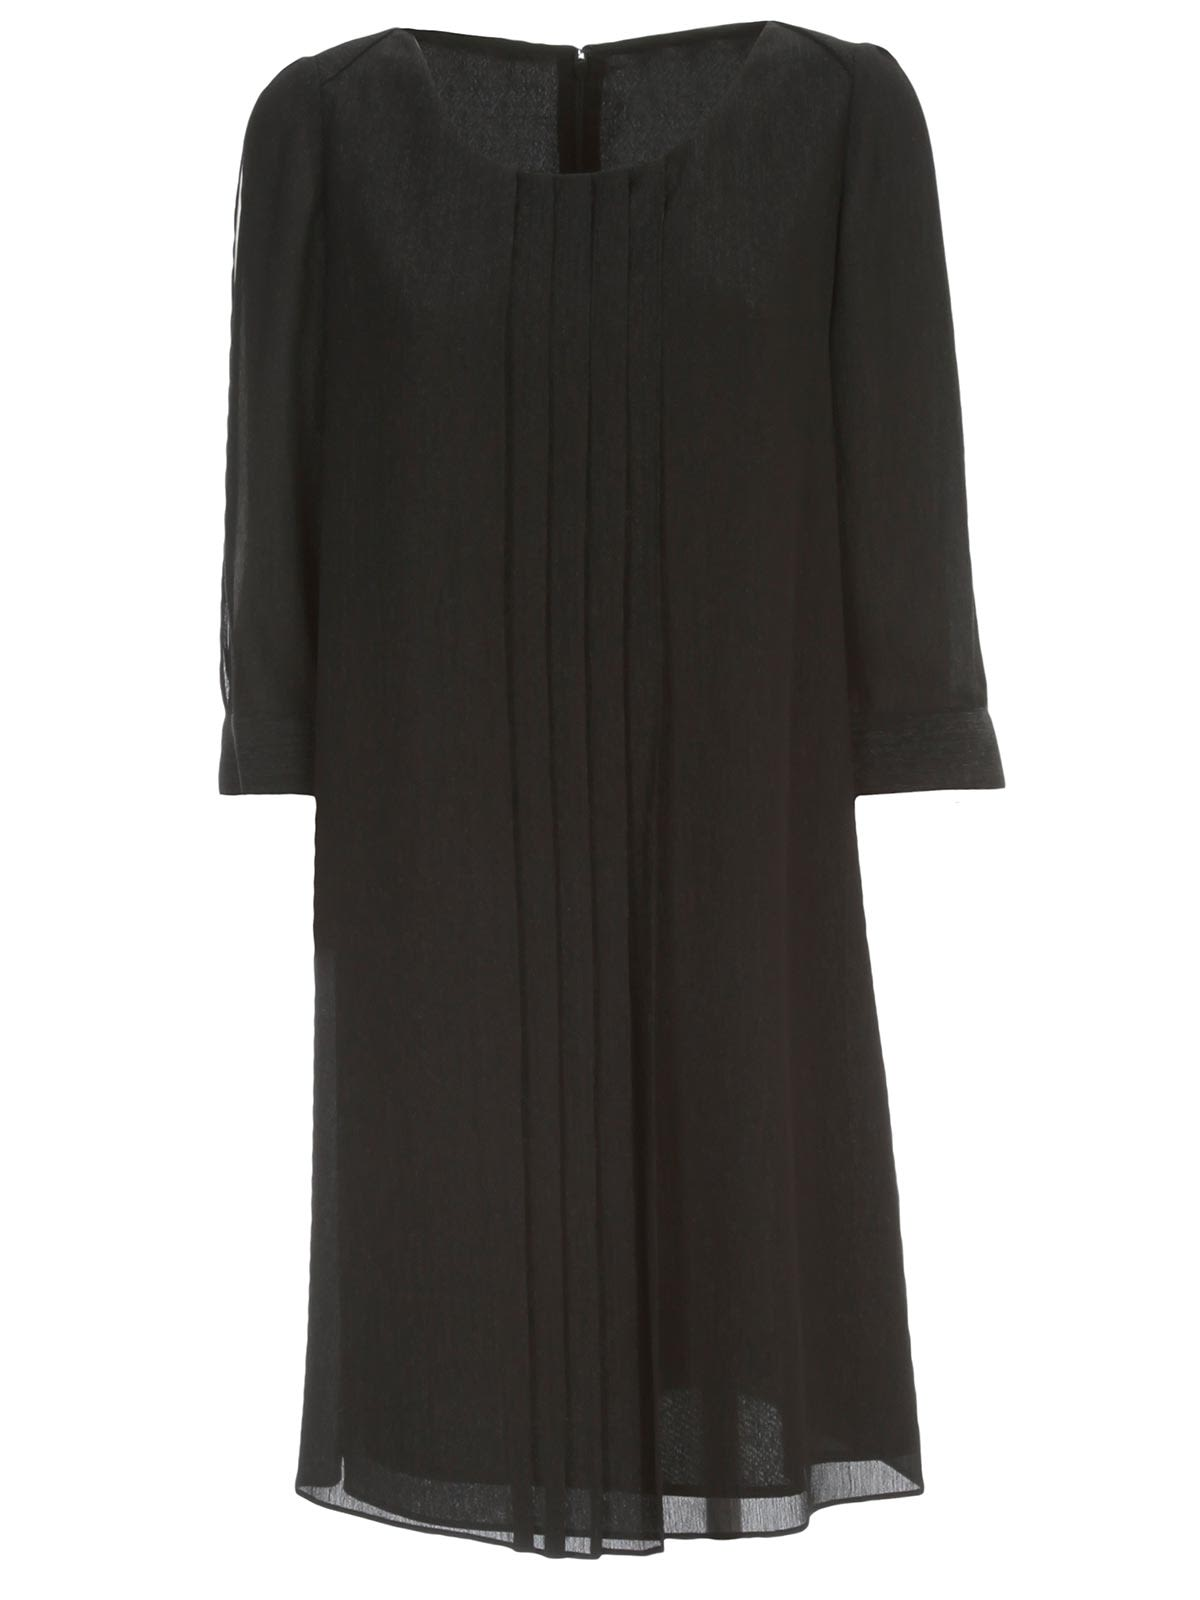 Buy Emporio Armani Pleated Dress 3/4s Crepe Lurex online, shop Emporio Armani with free shipping